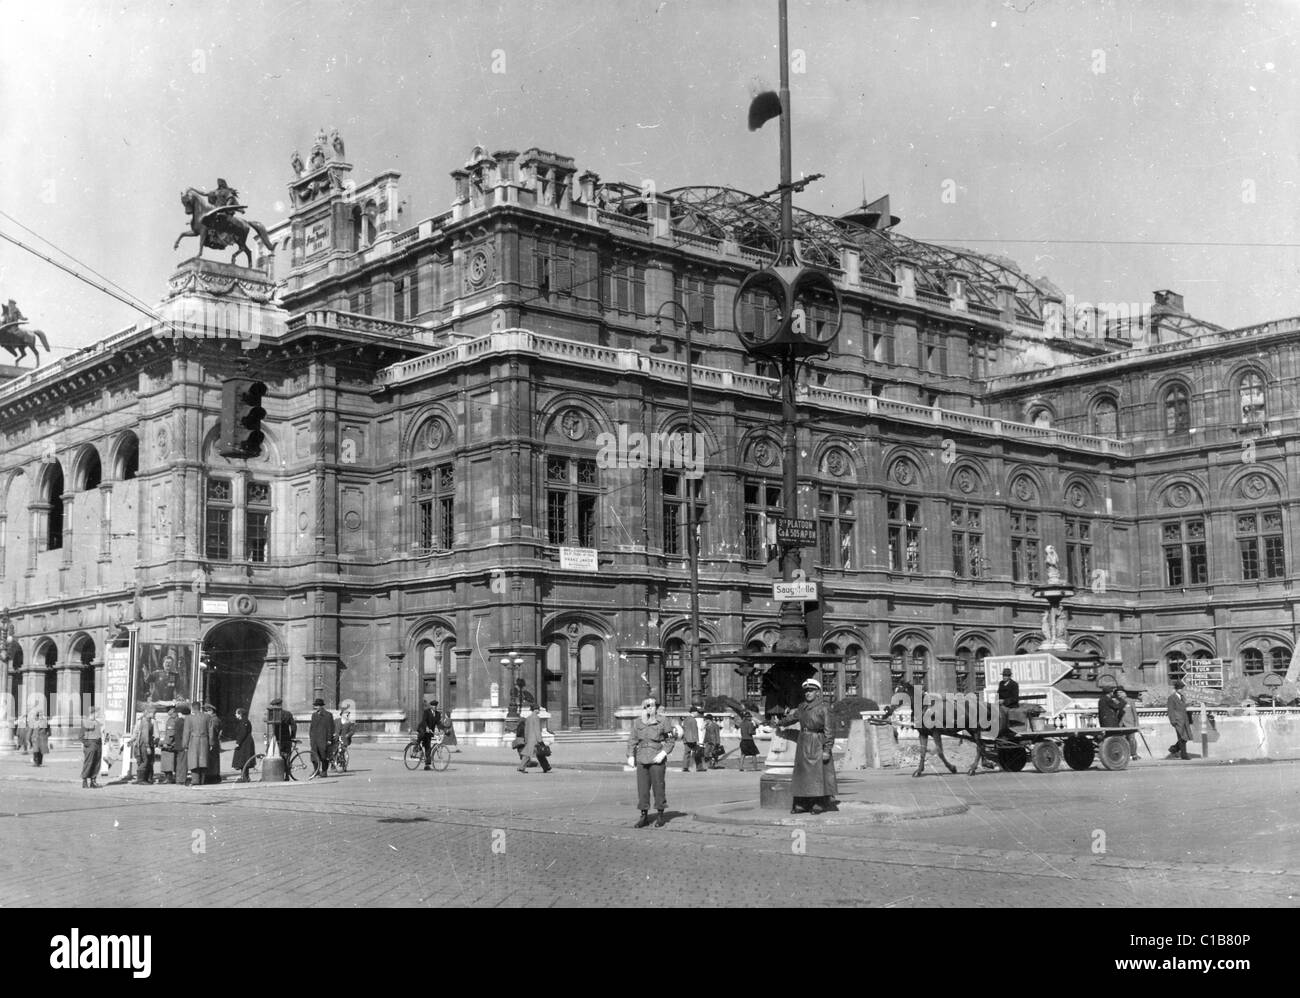 VIENNA OPERA HOUSE 1945 with Soviet posters at left and a US Military Policeman directing traffic - Stock Image